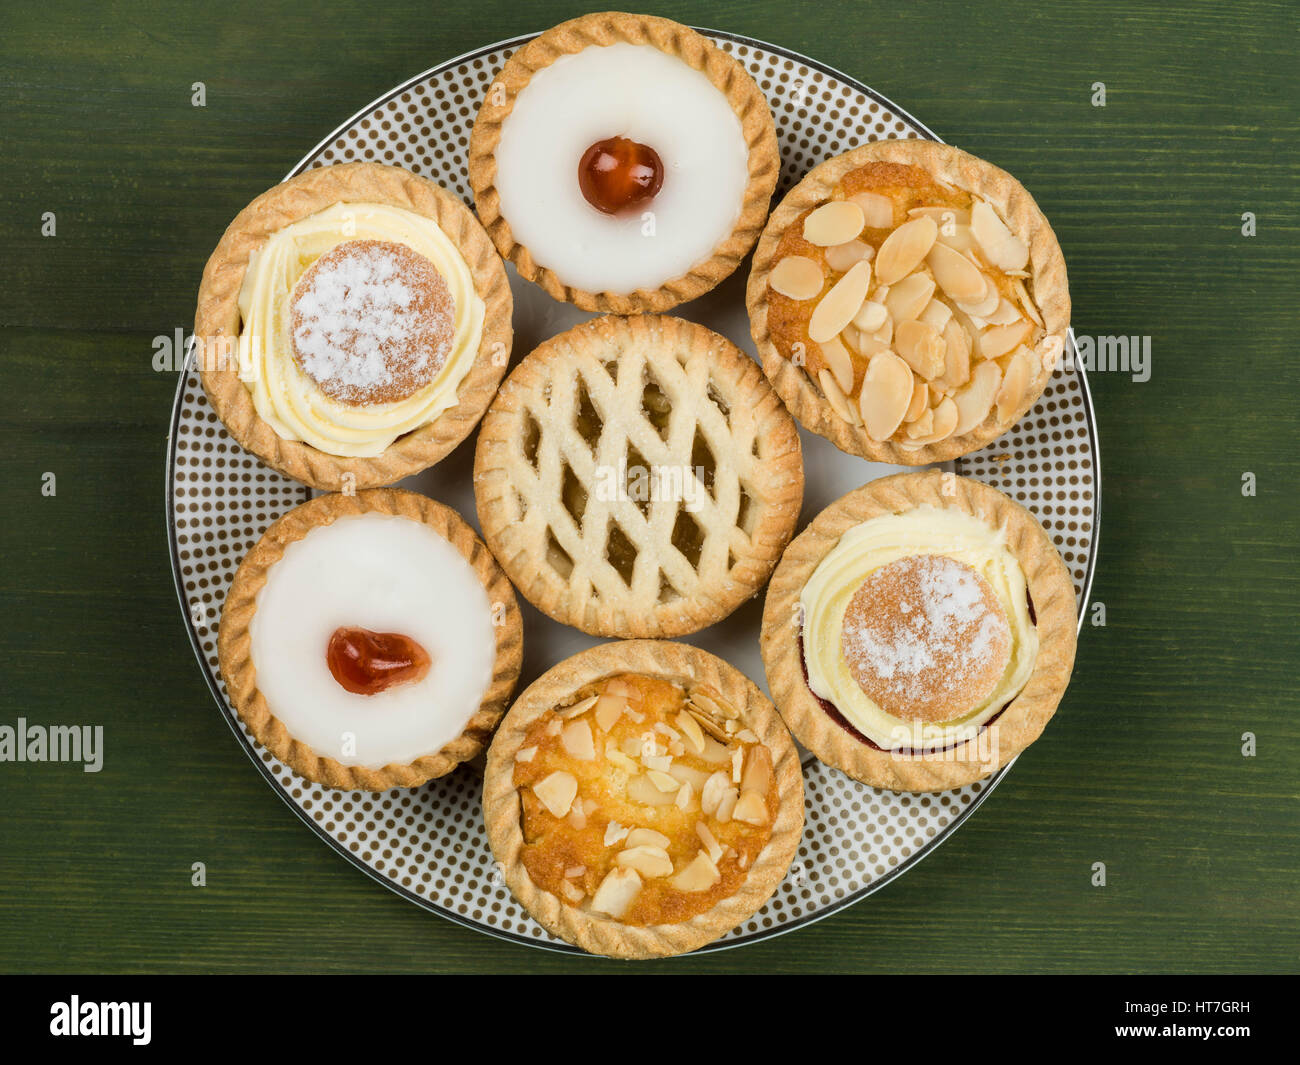 Plate of Assorted Individual Cakes or Tarts Against a Green Background - Stock Image